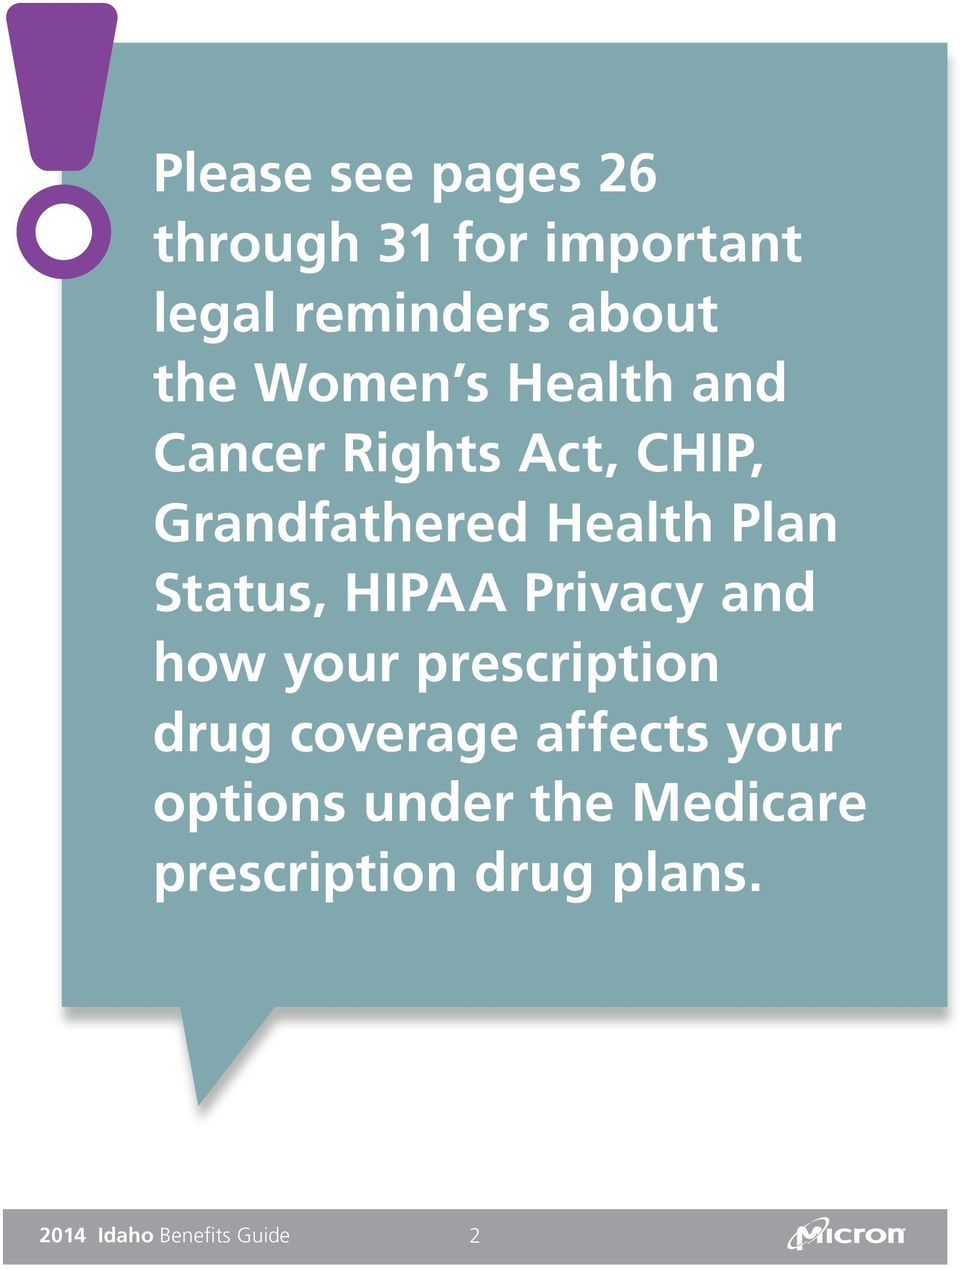 Status, HIPAA Privacy and how your prescription drug coverage affects